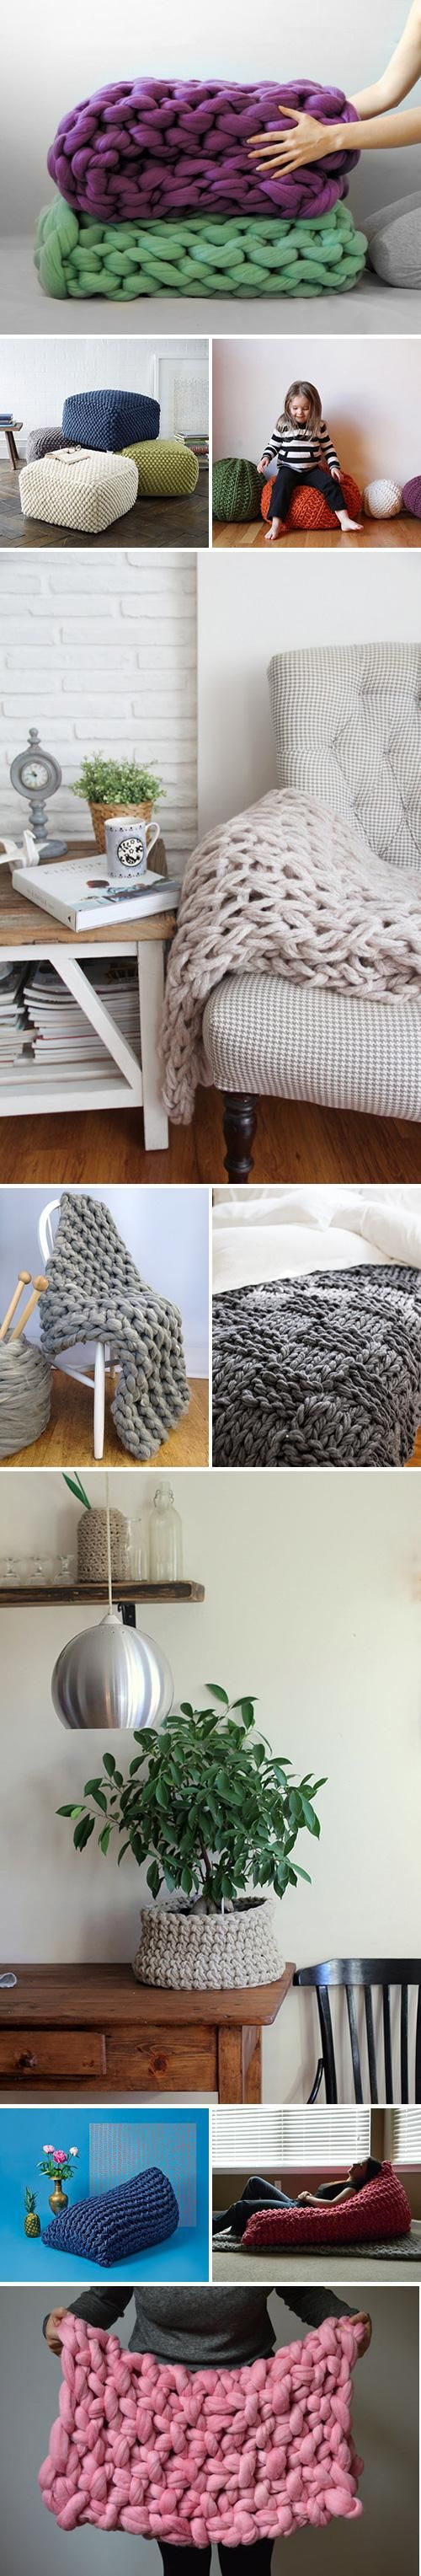 Fat crochet. Cozy.